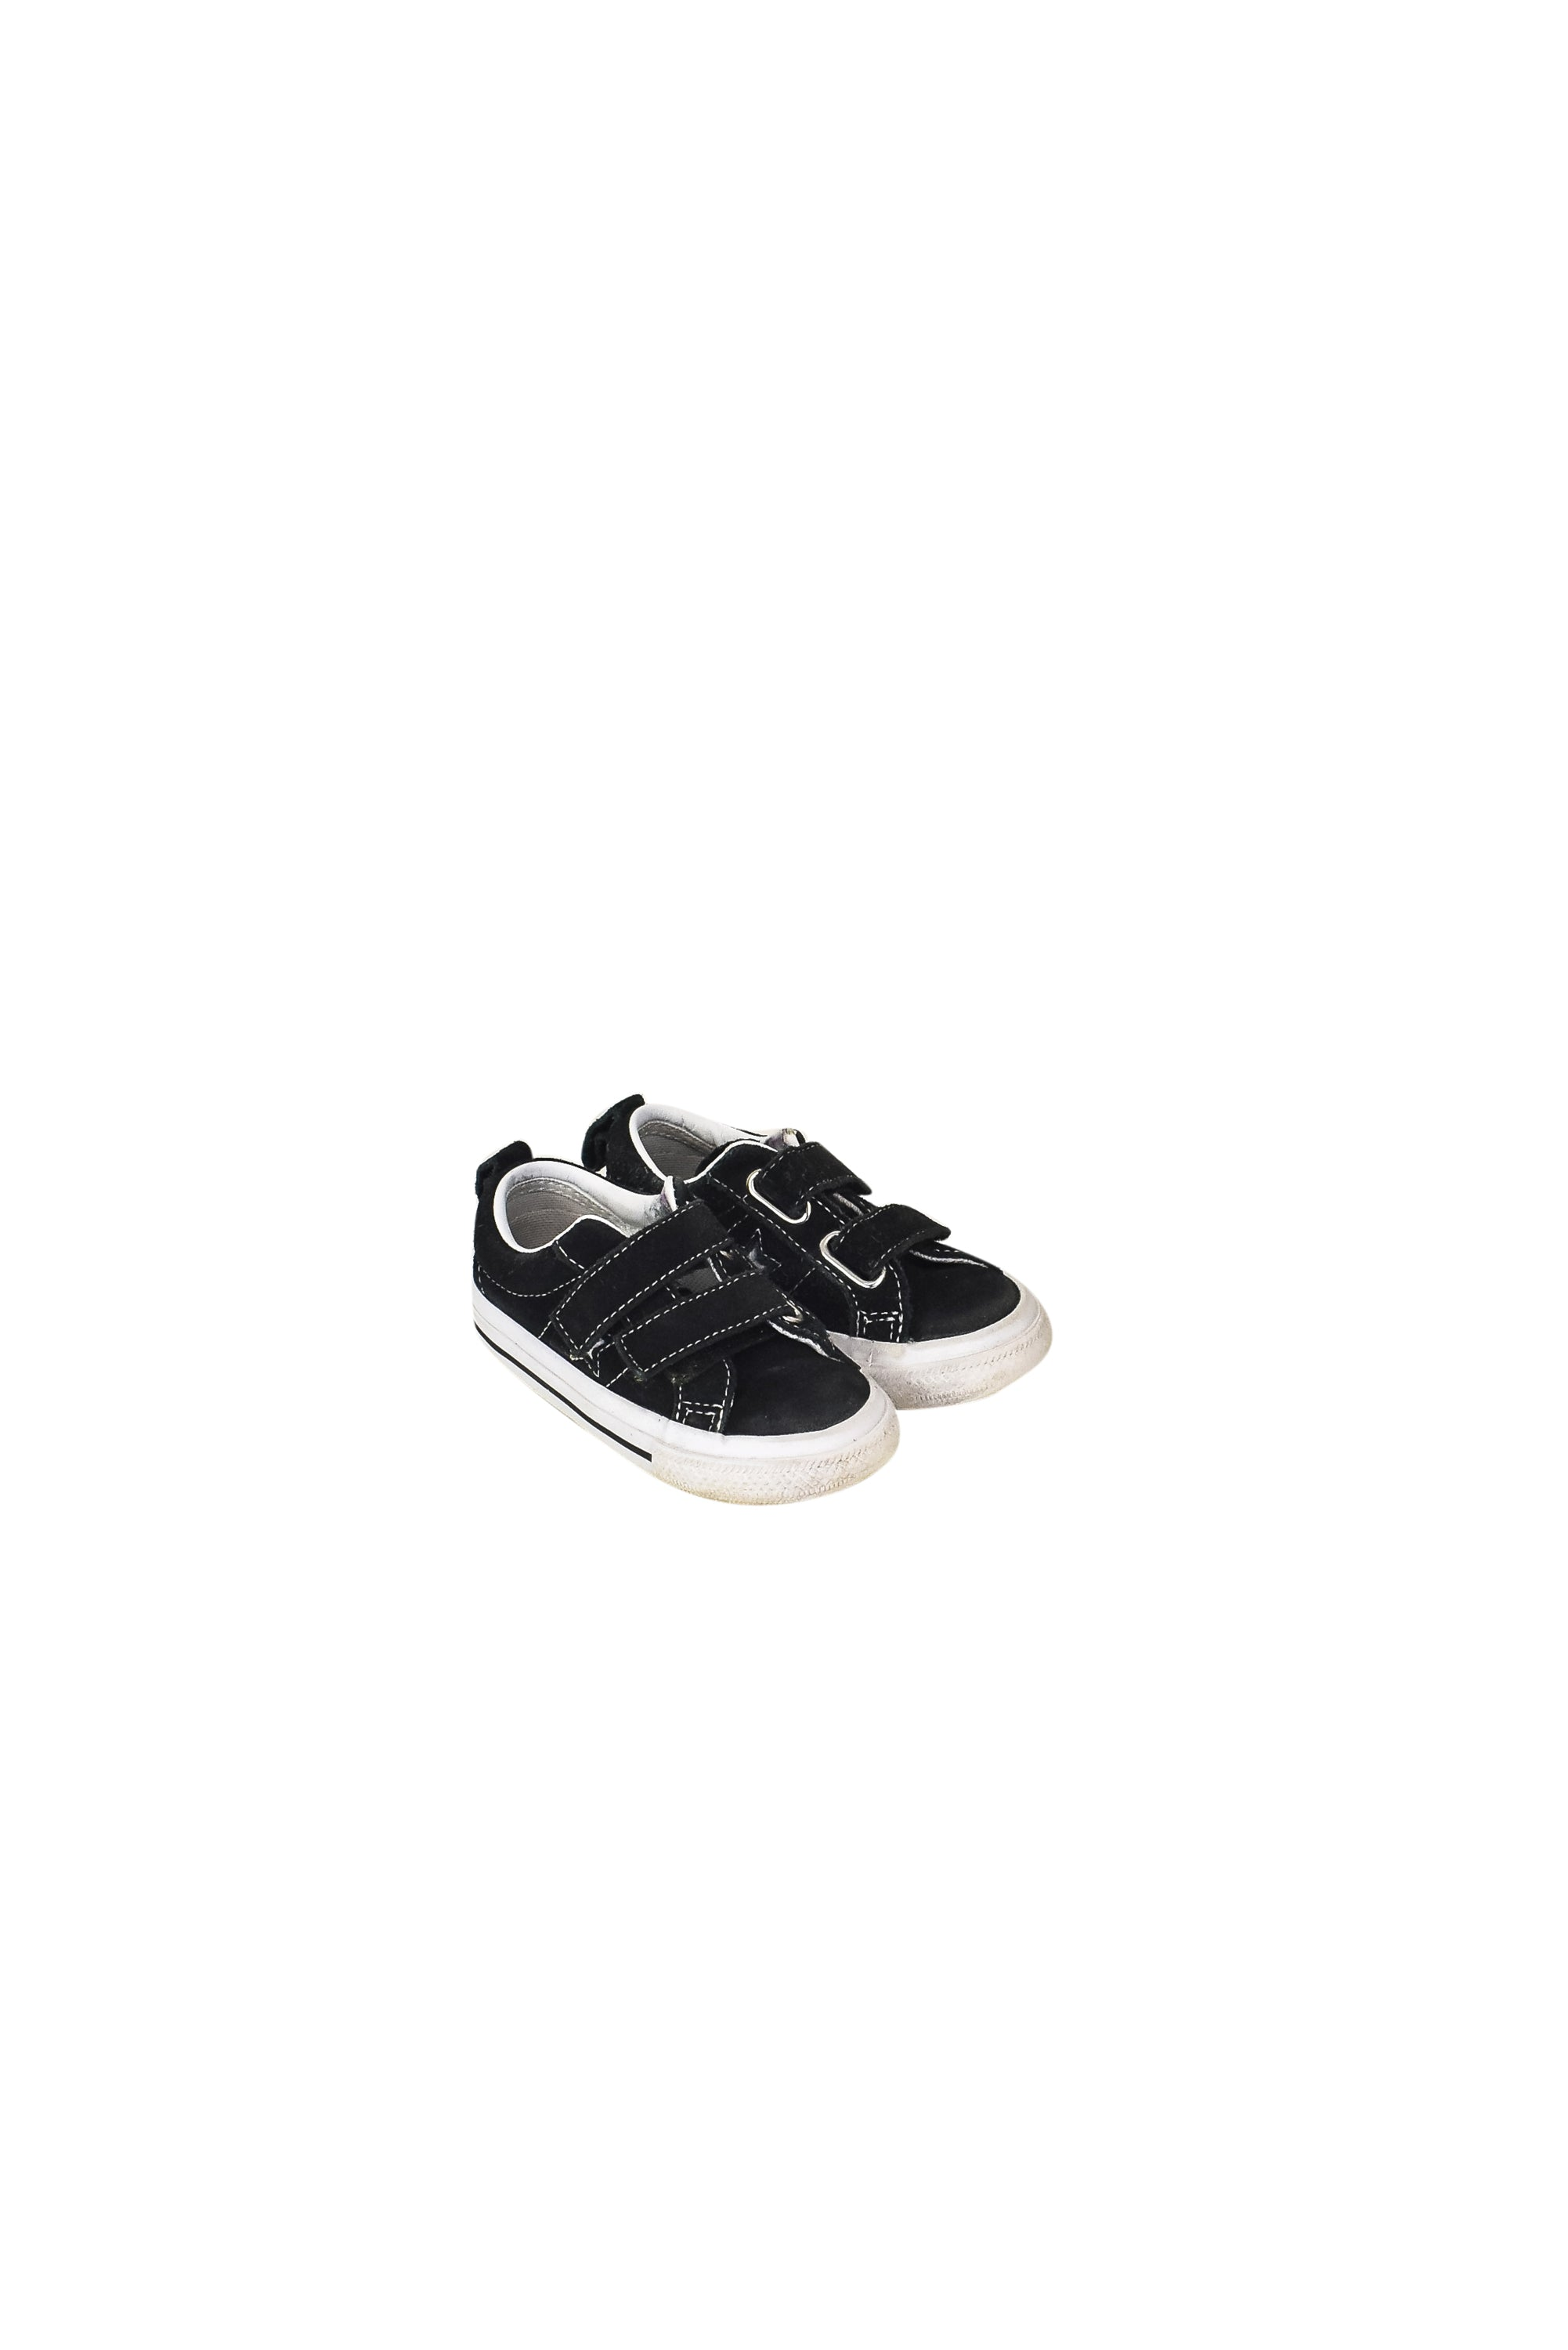 10034978 Converse Baby~Shoes 18-24M (EU 23) at Retykle